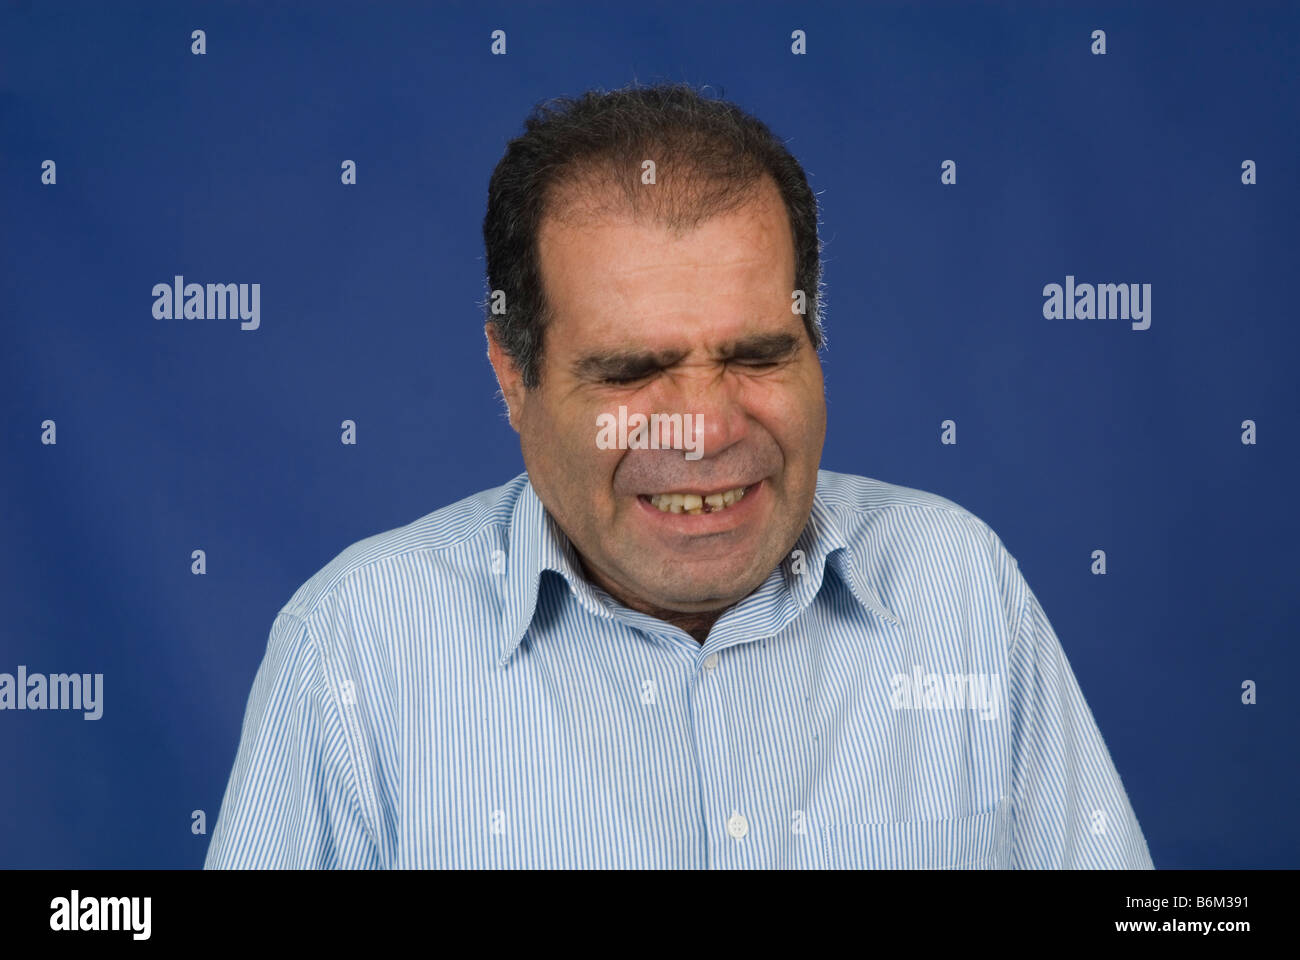 Man with annoyed facial expression - Stock Image